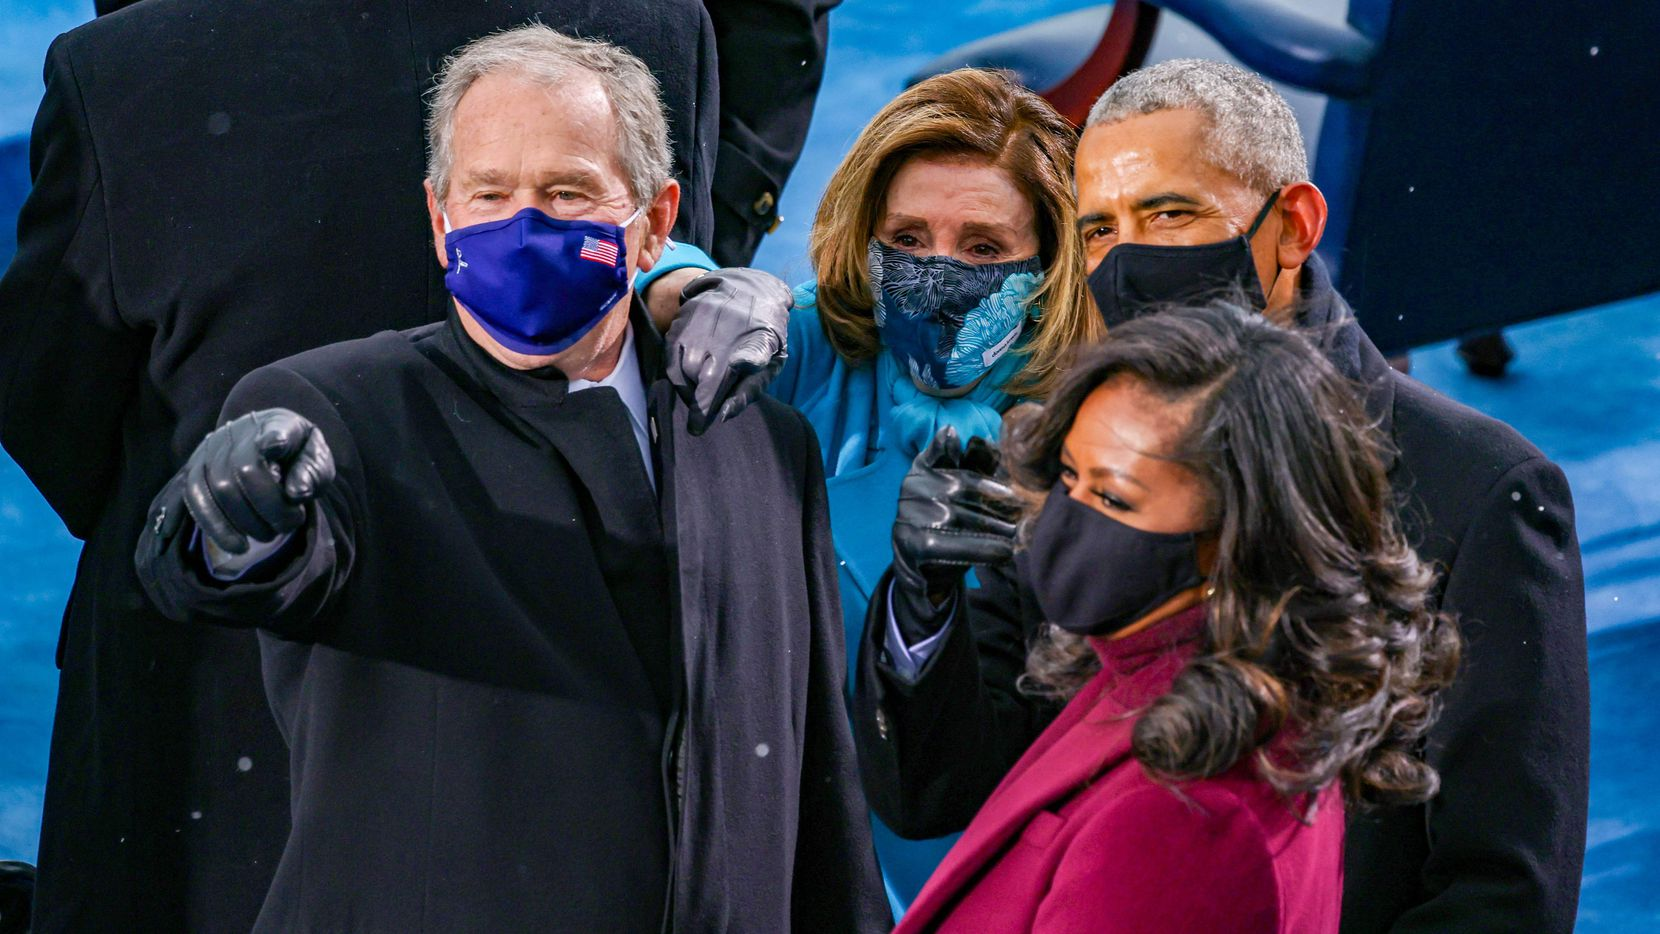 Former Presidents George W. Bush and Barack Obama, House Speaker Nancy Pelosi, and former first lady Michelle Obama arrive at the inauguration of President Joe Biden on the West Front of the US Capitol on Jan. 20, 2021.